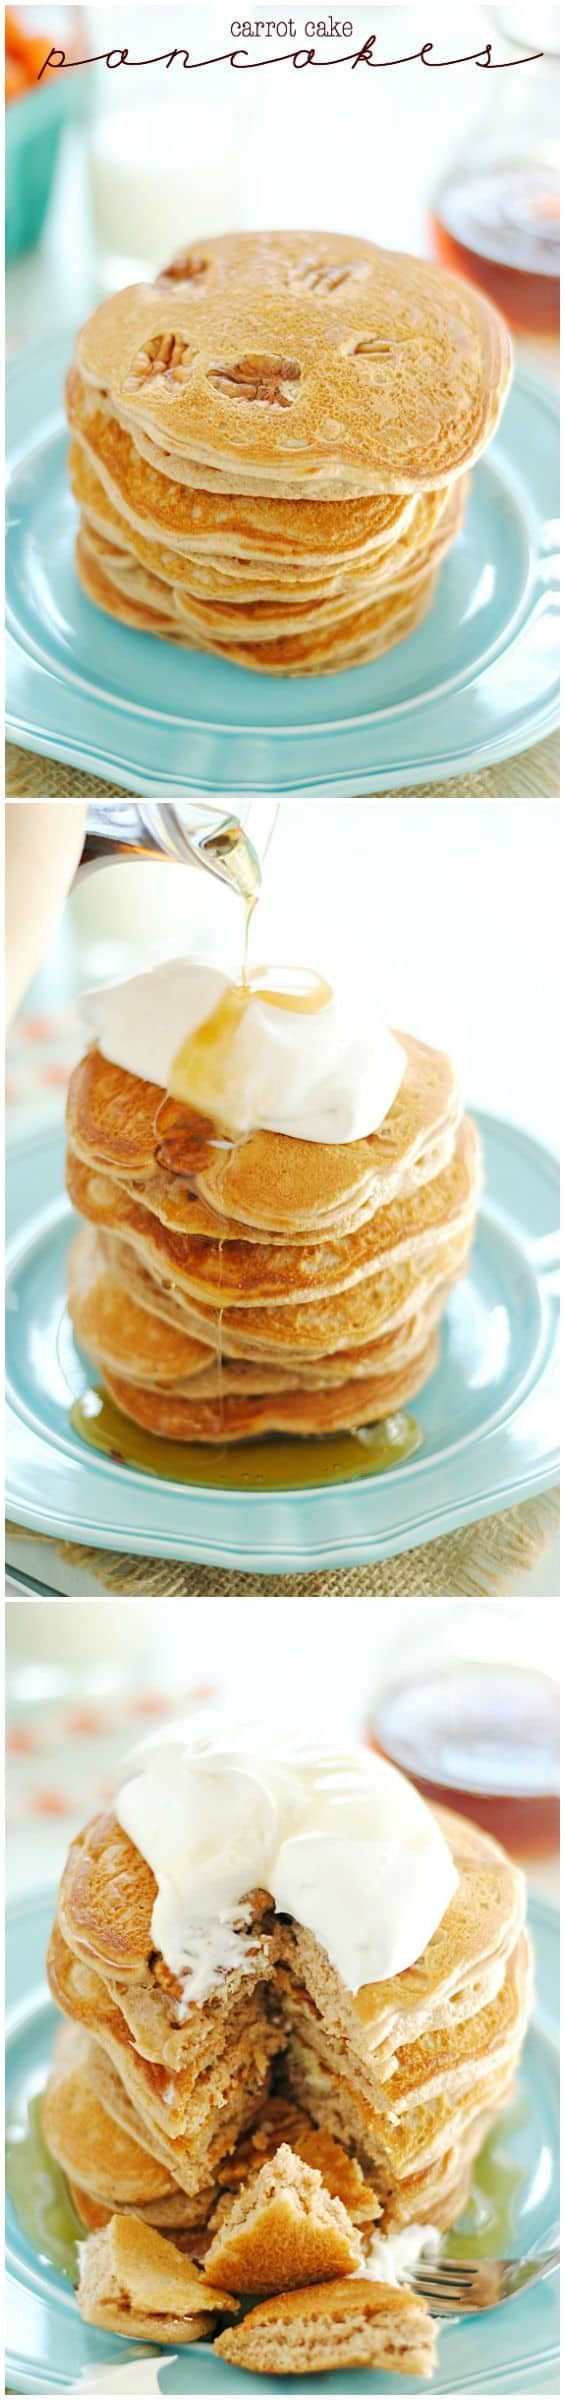 Carrot Cake Pancakes Made With Cake Mix